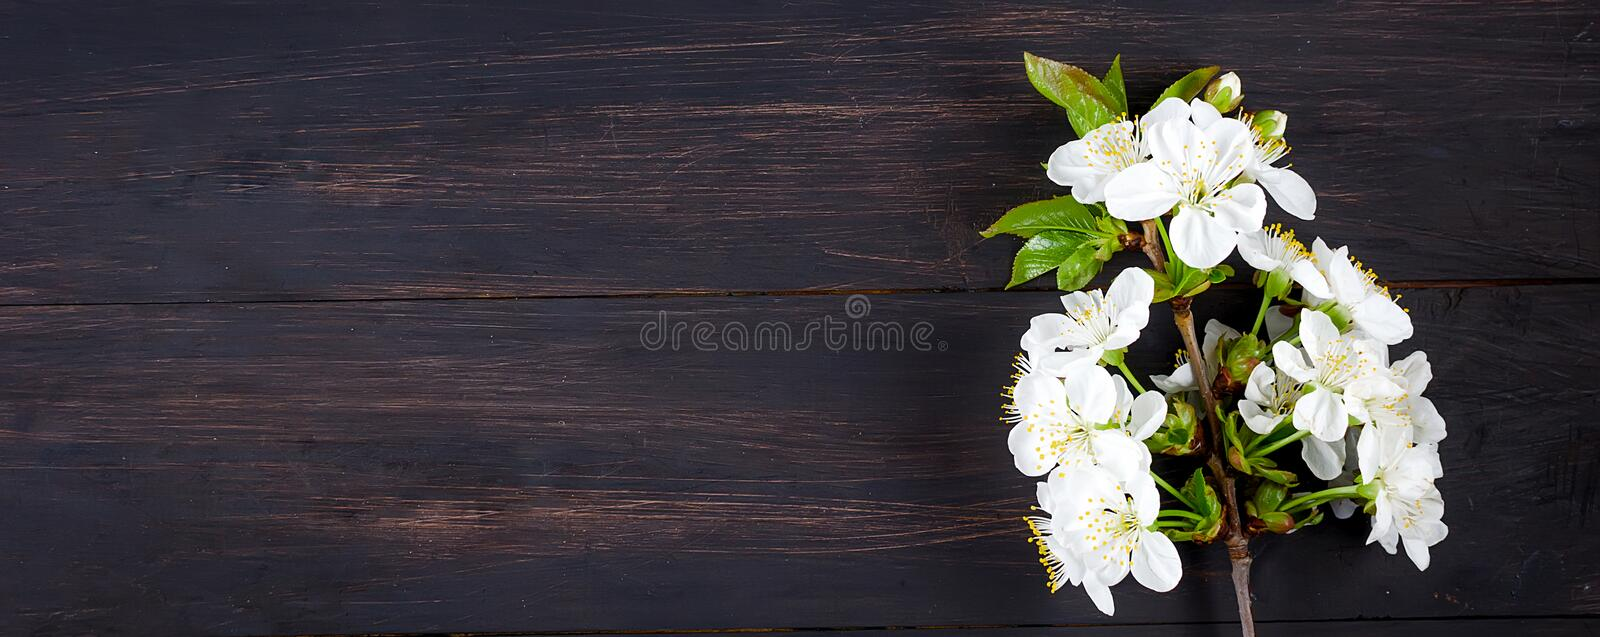 cherry flowers on dark wooden background royalty free stock photo